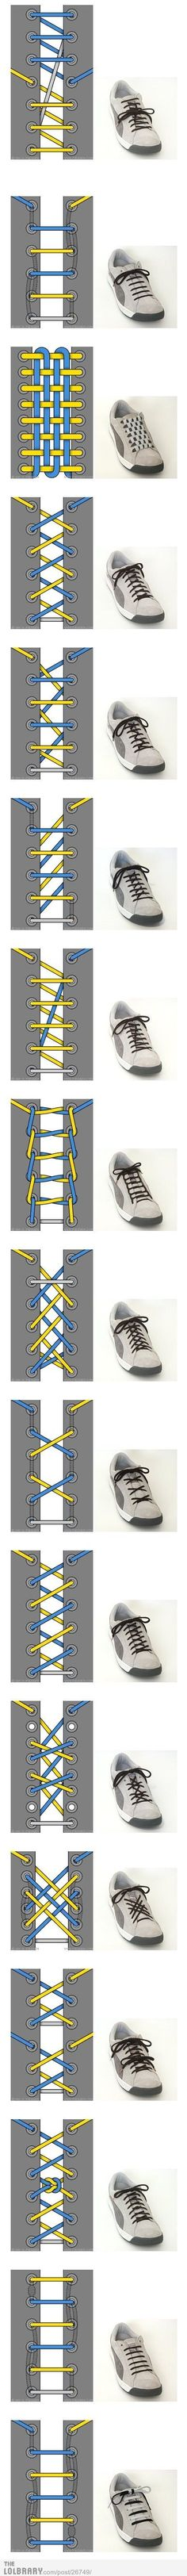 Interesting Shoelace Designs | LOLBRARY.COM